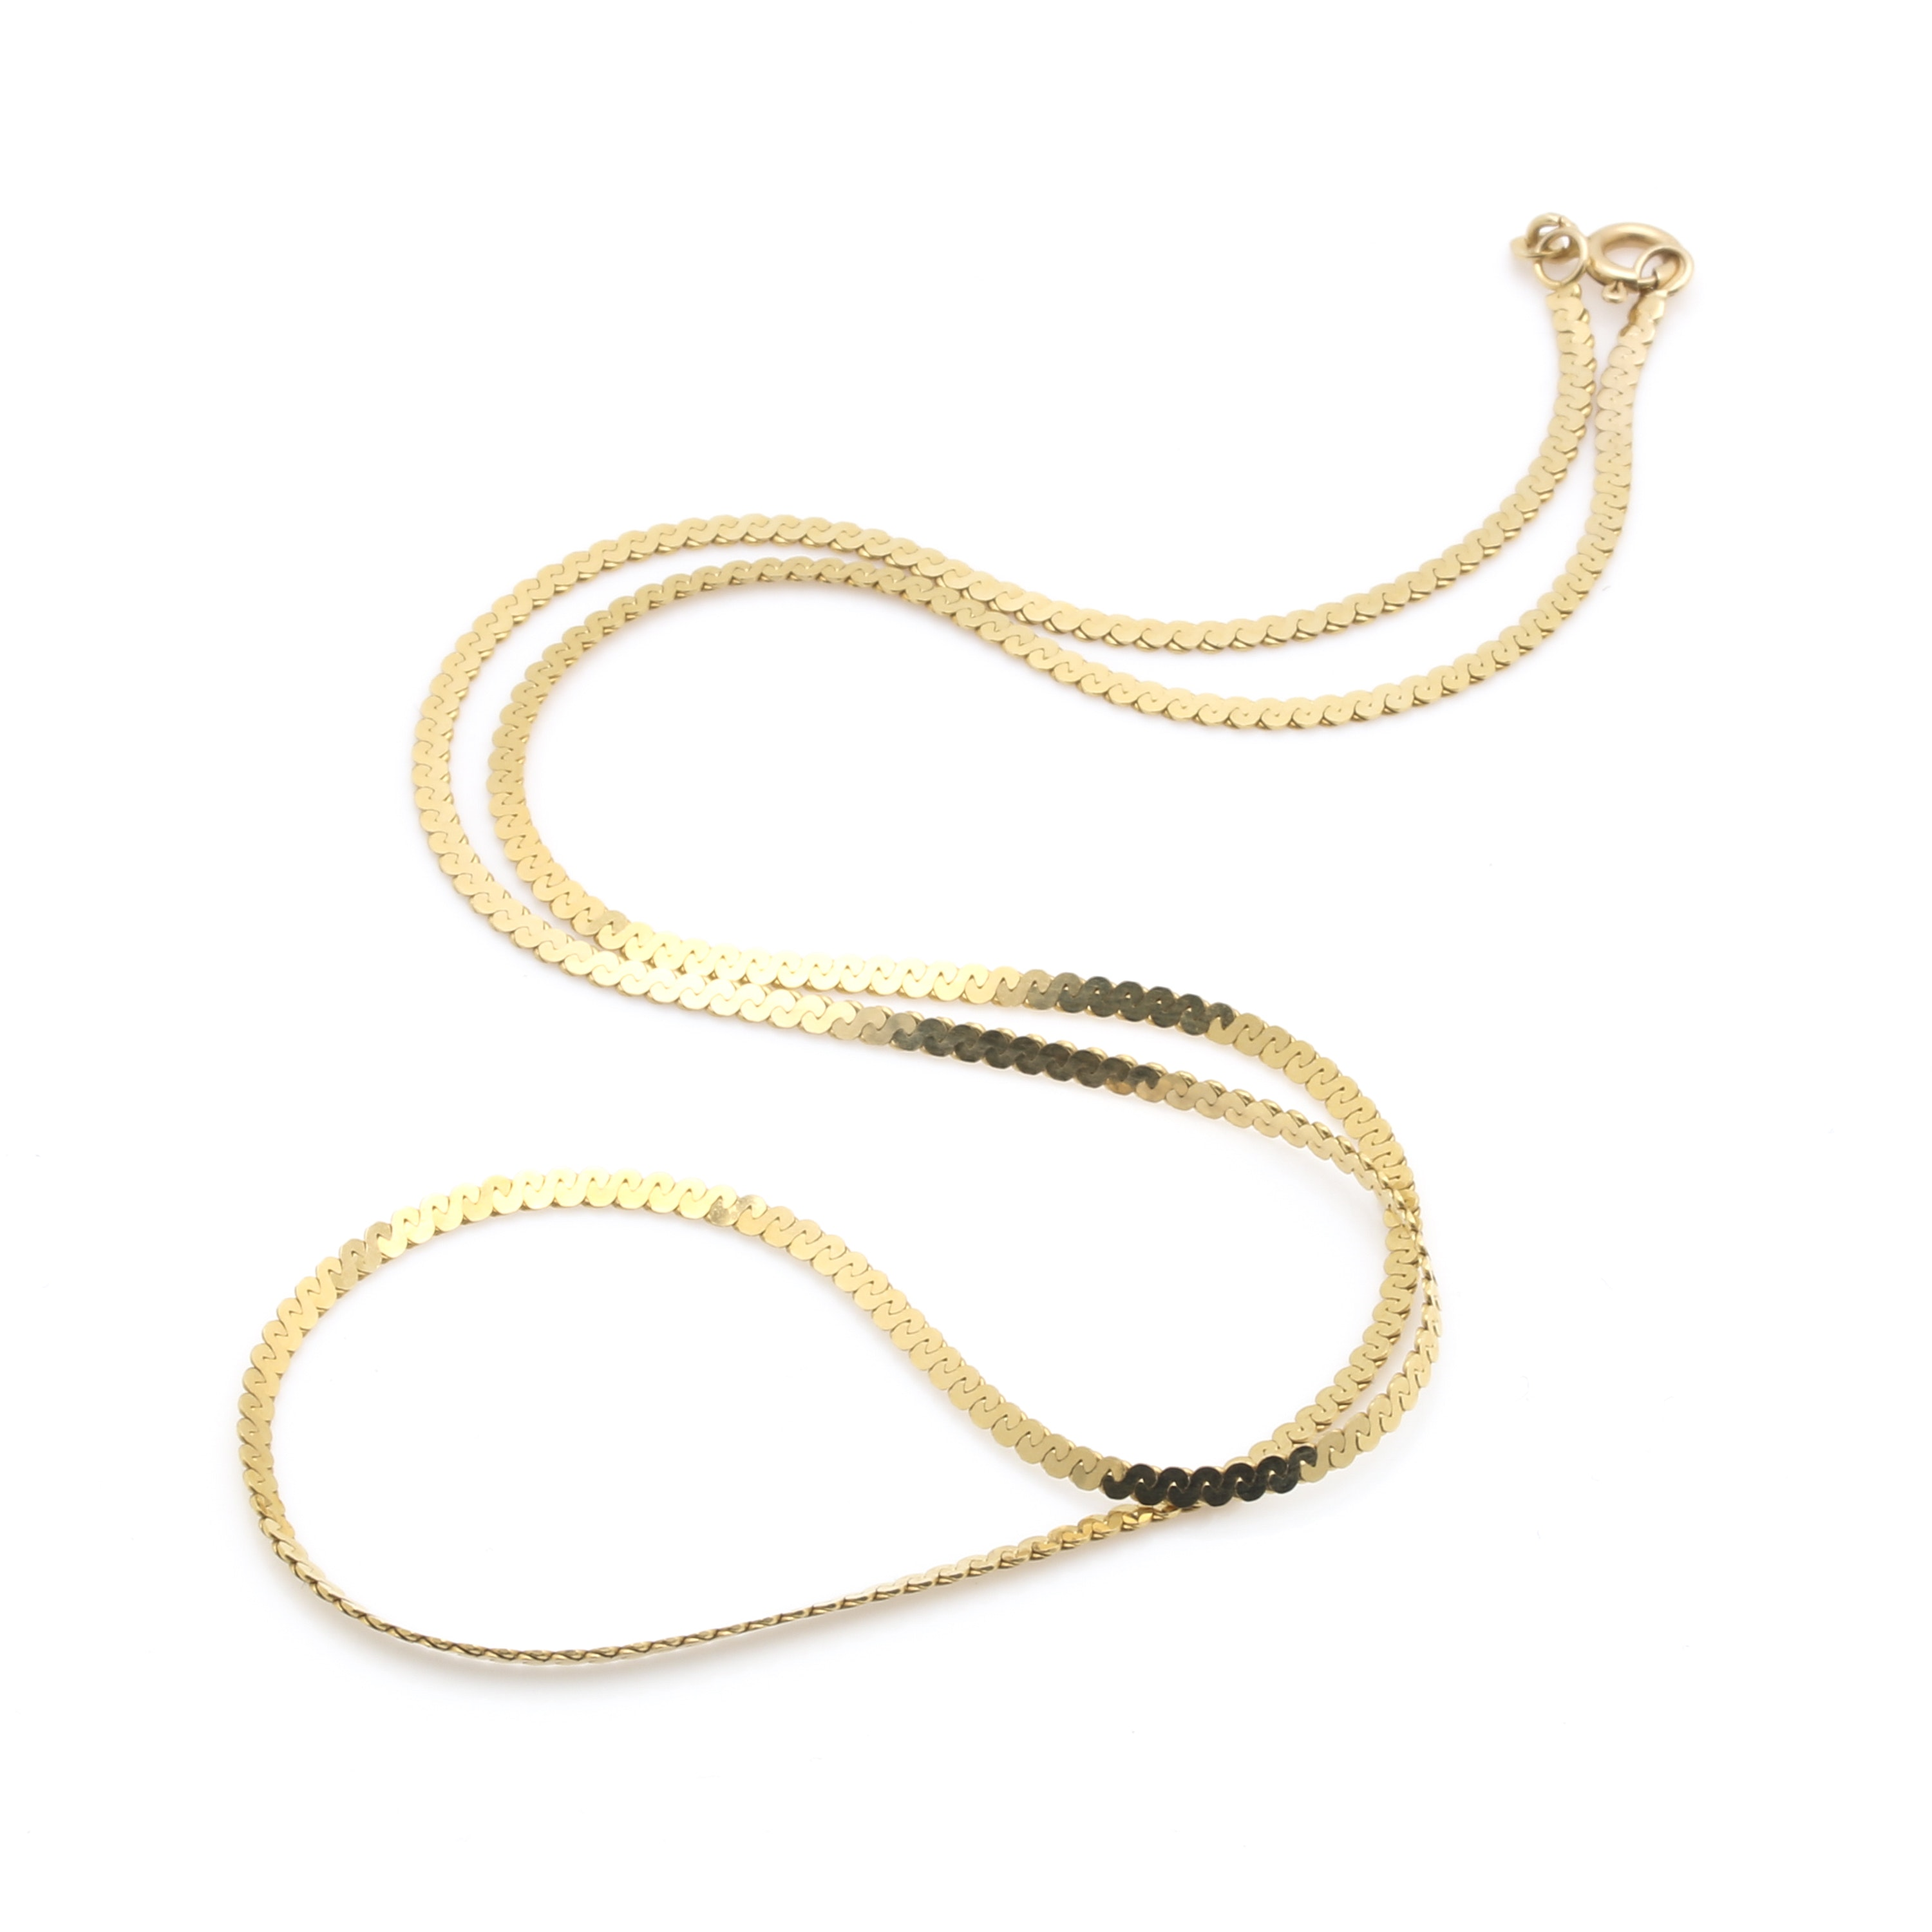 14K Yellow Gold S-Link Chain Necklace